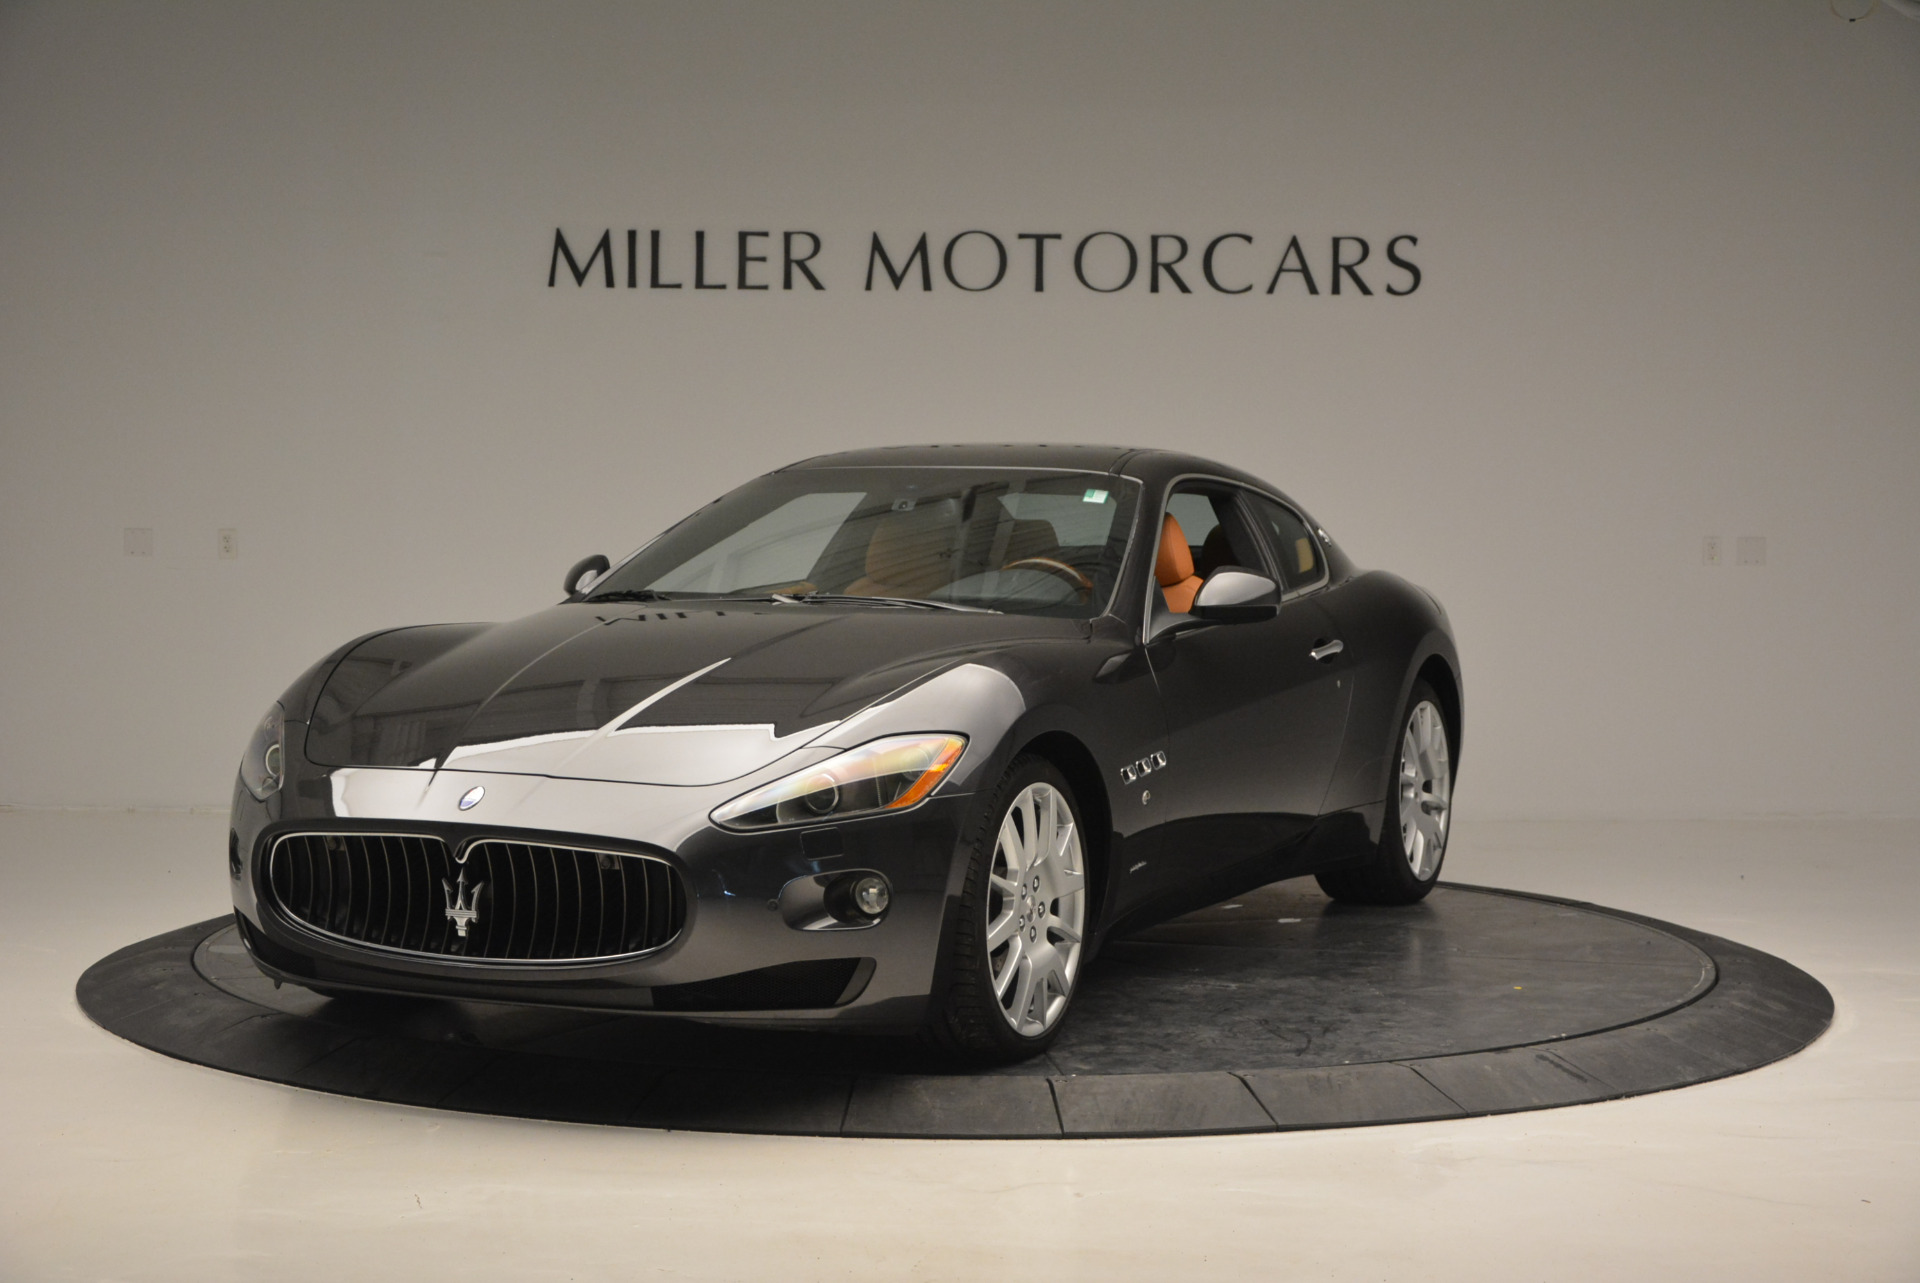 Used 2011 Maserati GranTurismo for sale Sold at Bentley Greenwich in Greenwich CT 06830 1